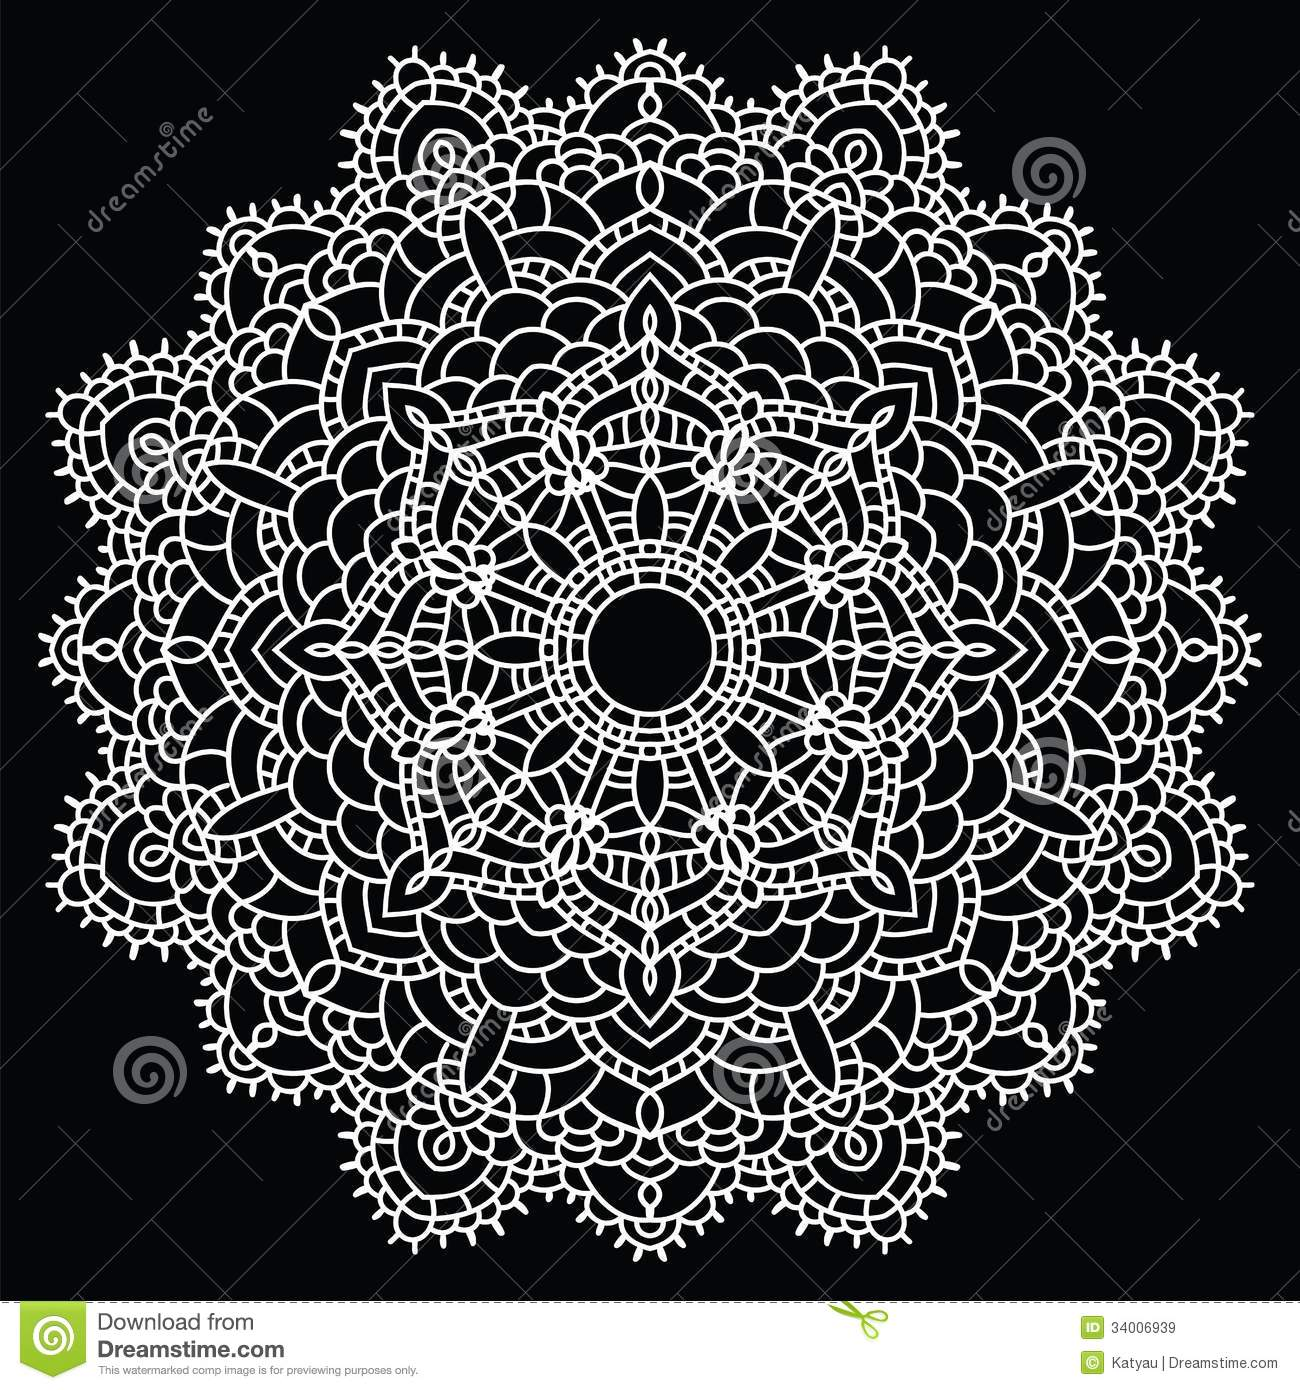 Crocheting Vector : ... handmade knitted doily. Round lace pattern. Vector illustration